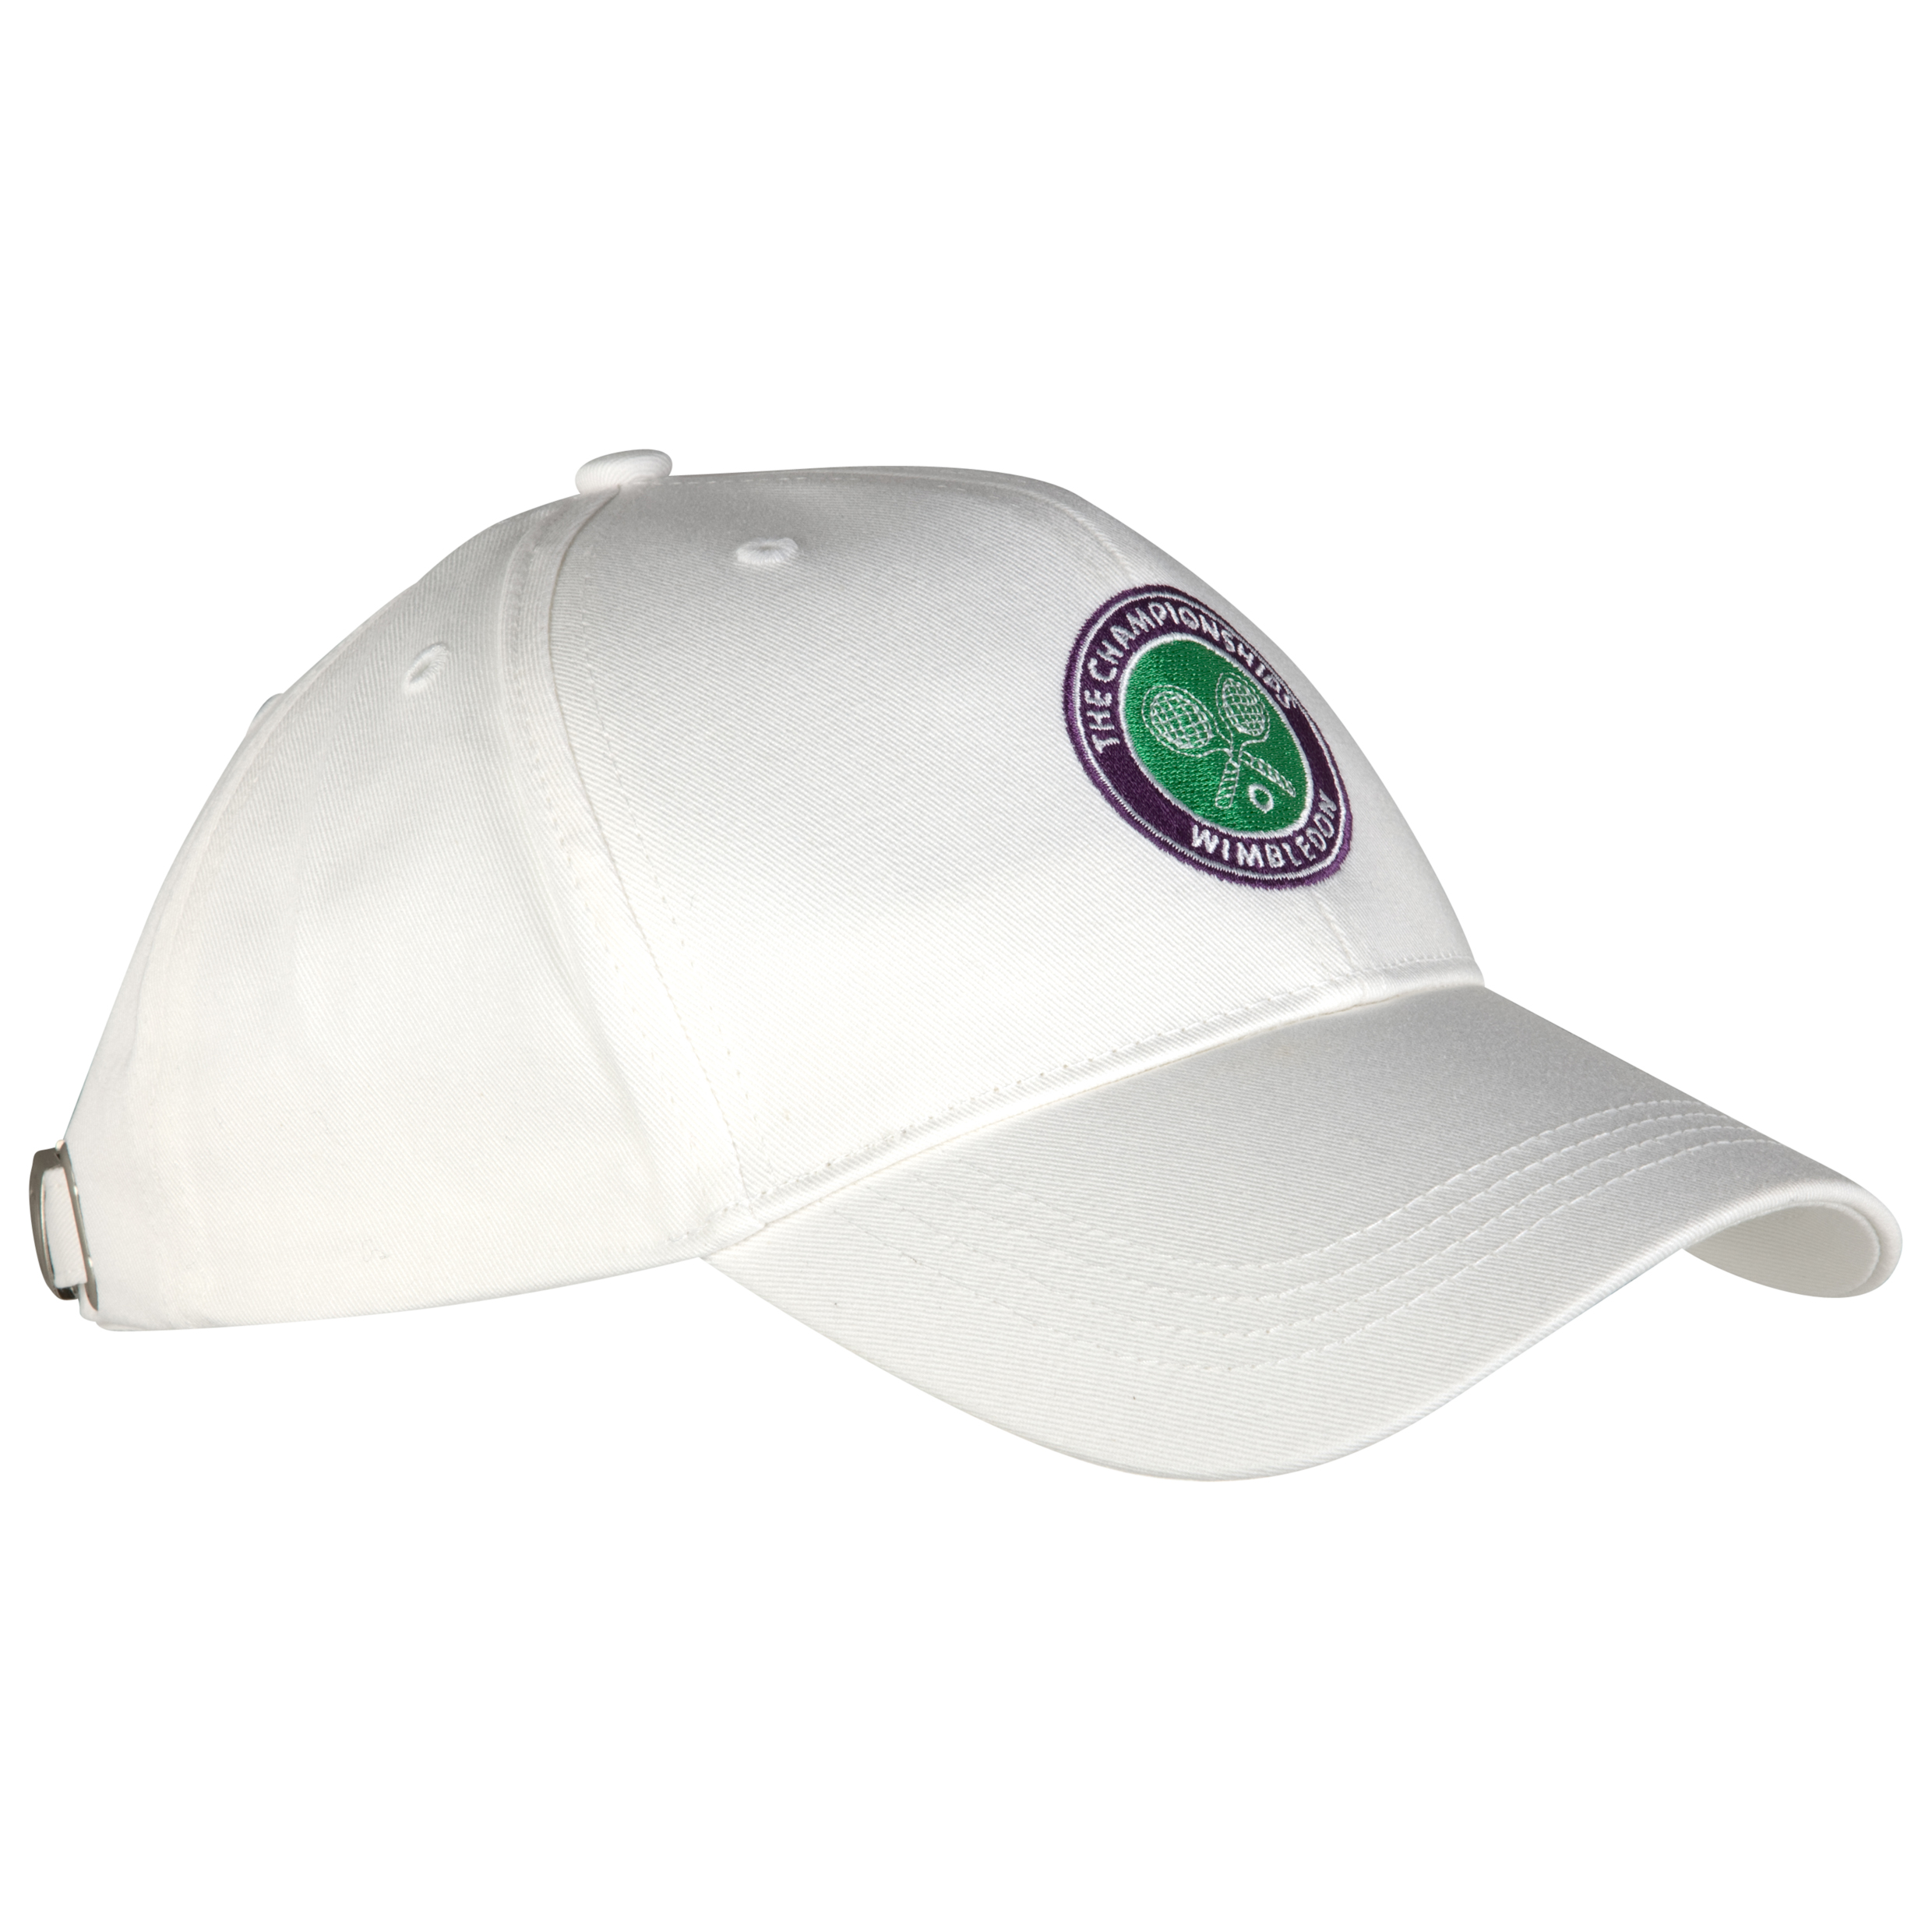 Wimbledon Crossed Rackets Cap - White